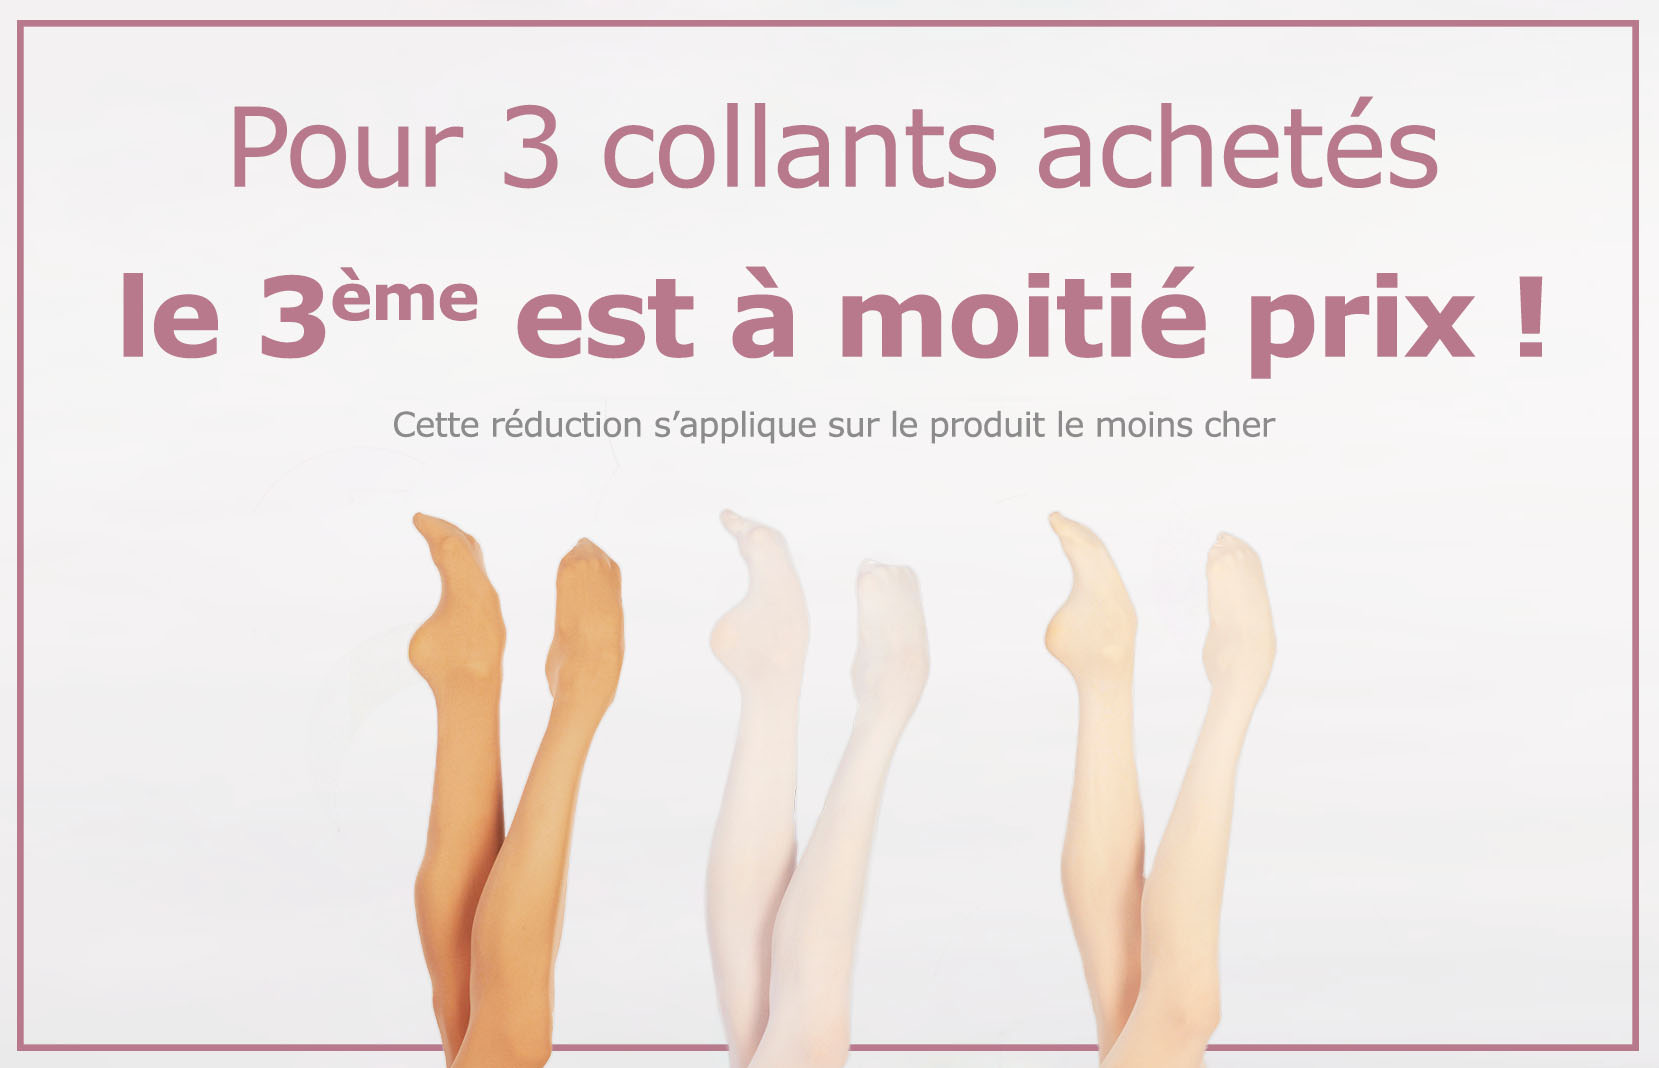 Promotion collants